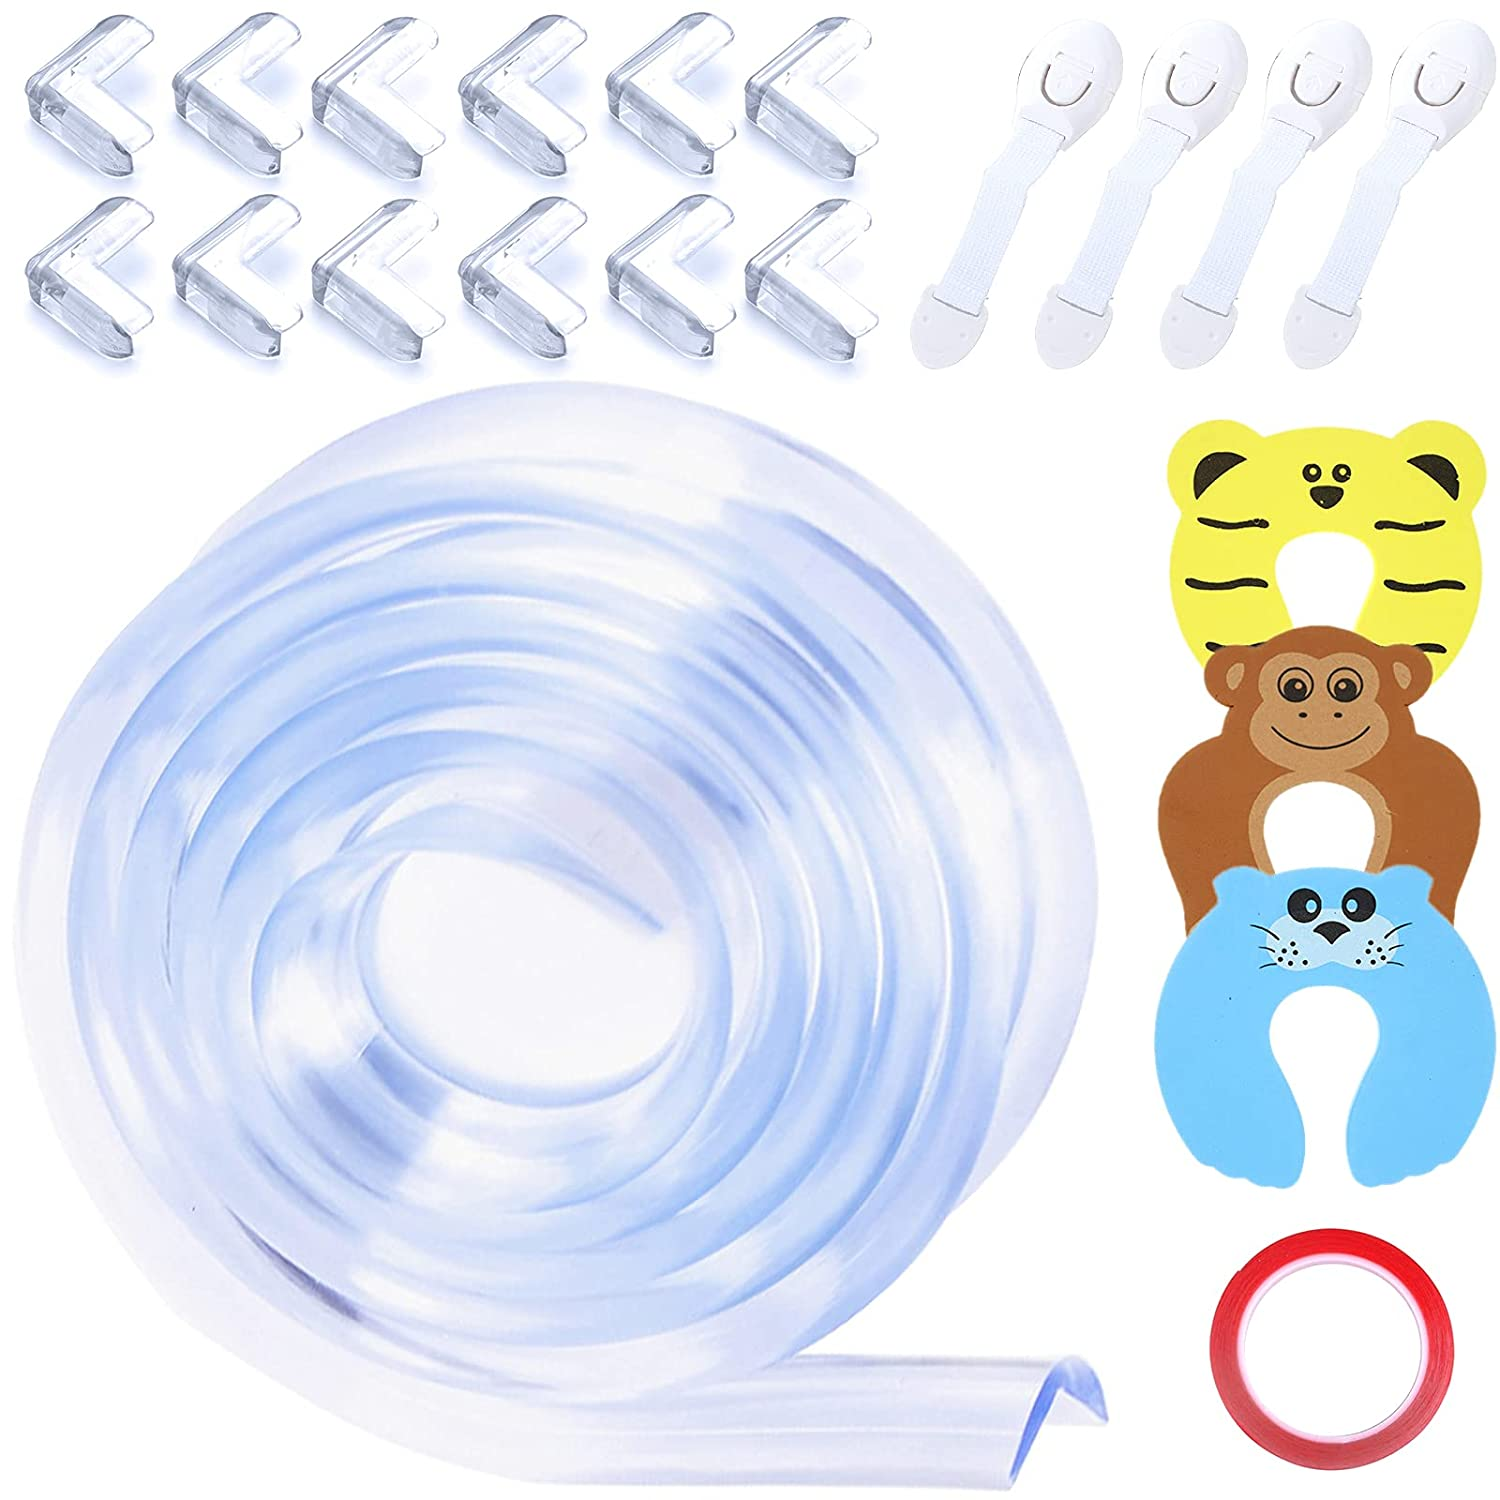 ZYNERY Baby Proofing Edge and Corner Guards, Table Corner Protectors + Furniture Bumpers + Door Stoppers + Drawer Locks, Baby Safety Kit for Fireplace, Stair, Cabinet, Countertop